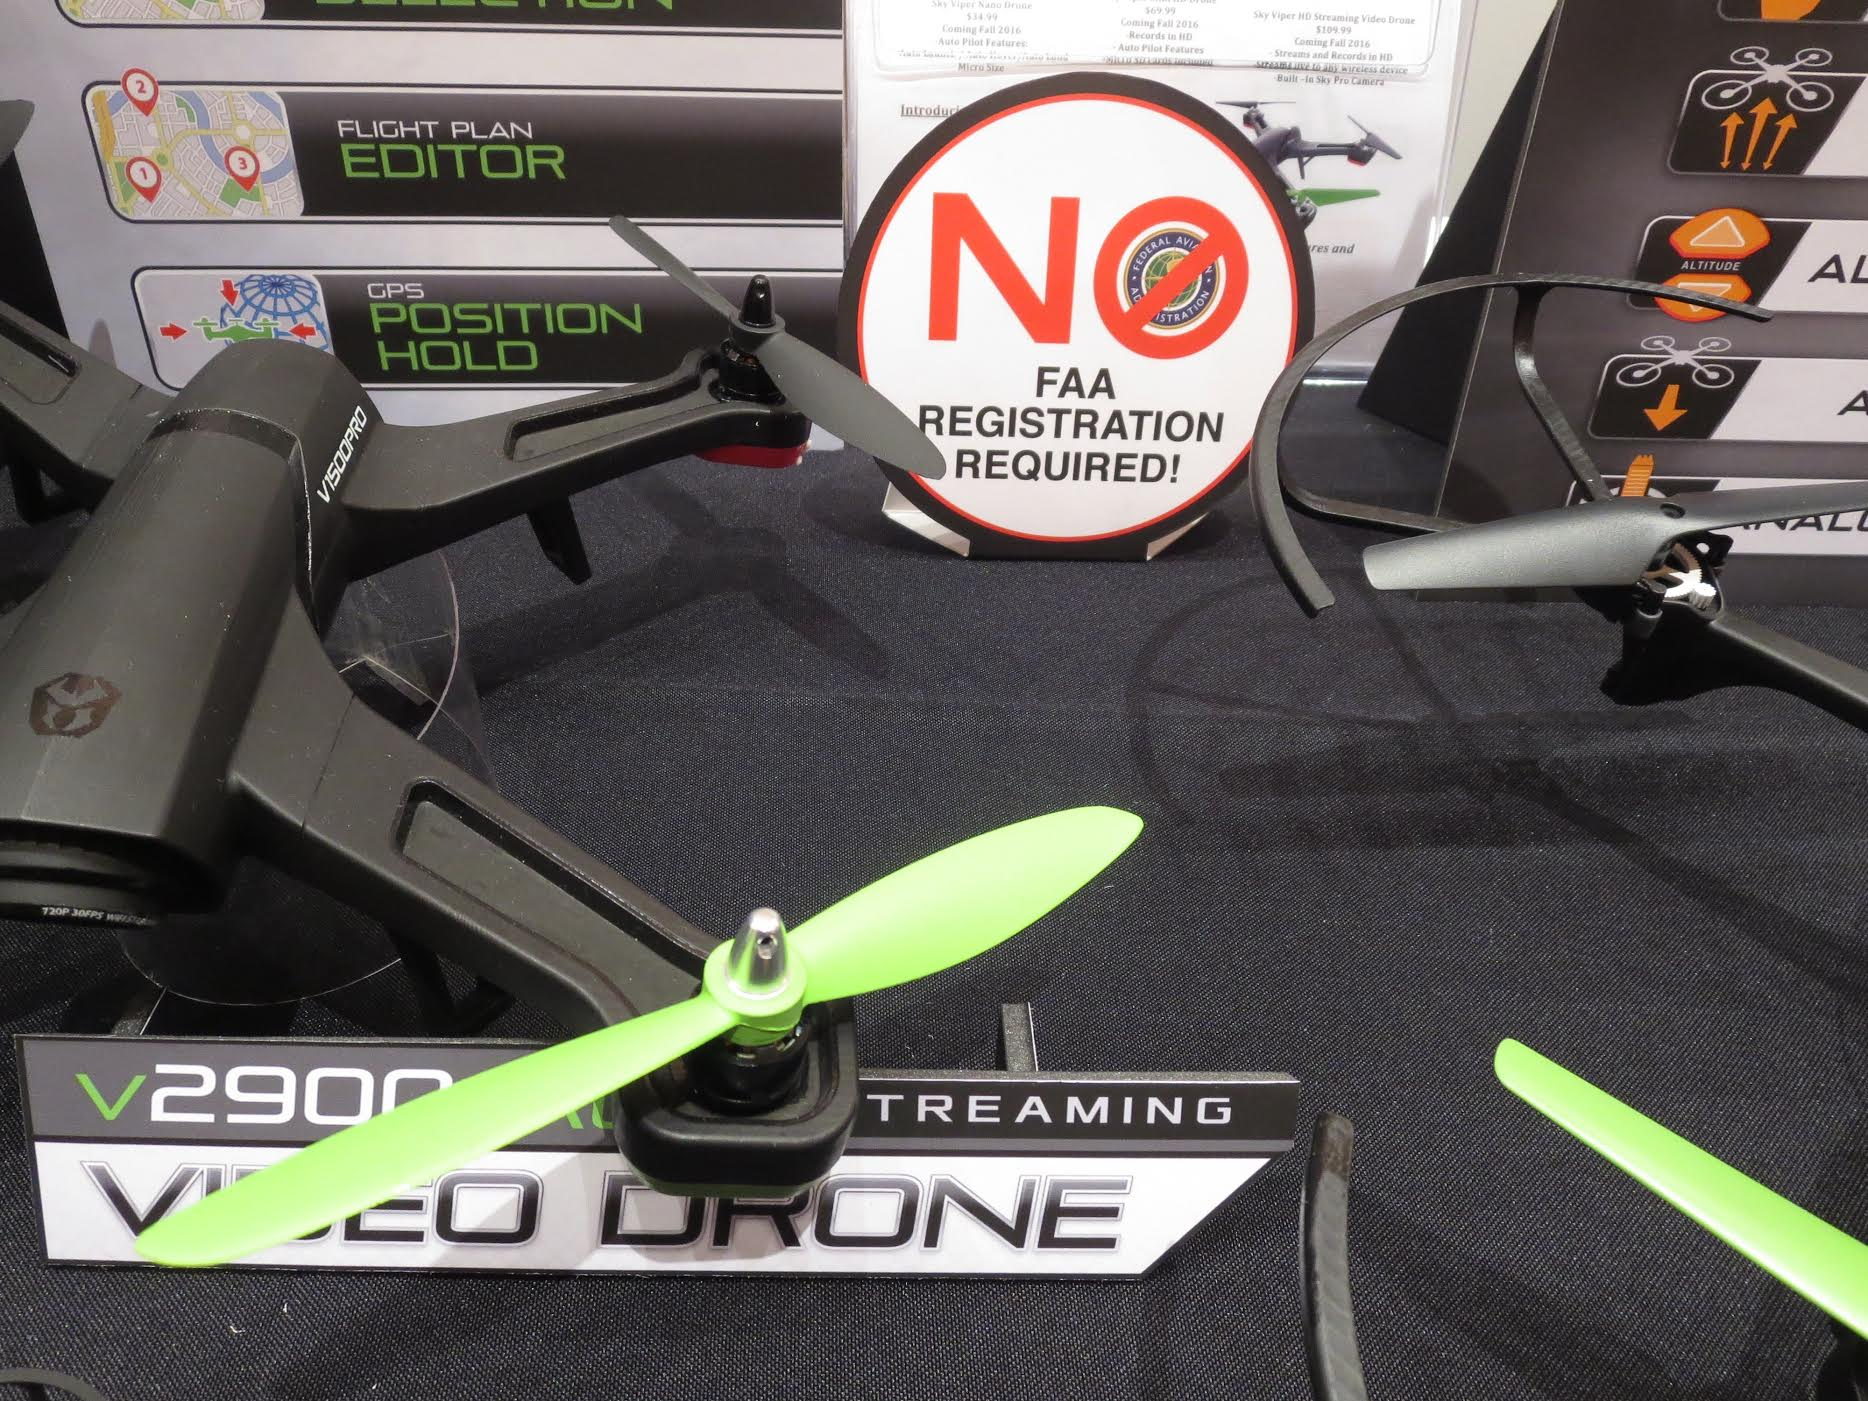 FAA: Over 181,000 Of You Have Registered Your Drones So Far